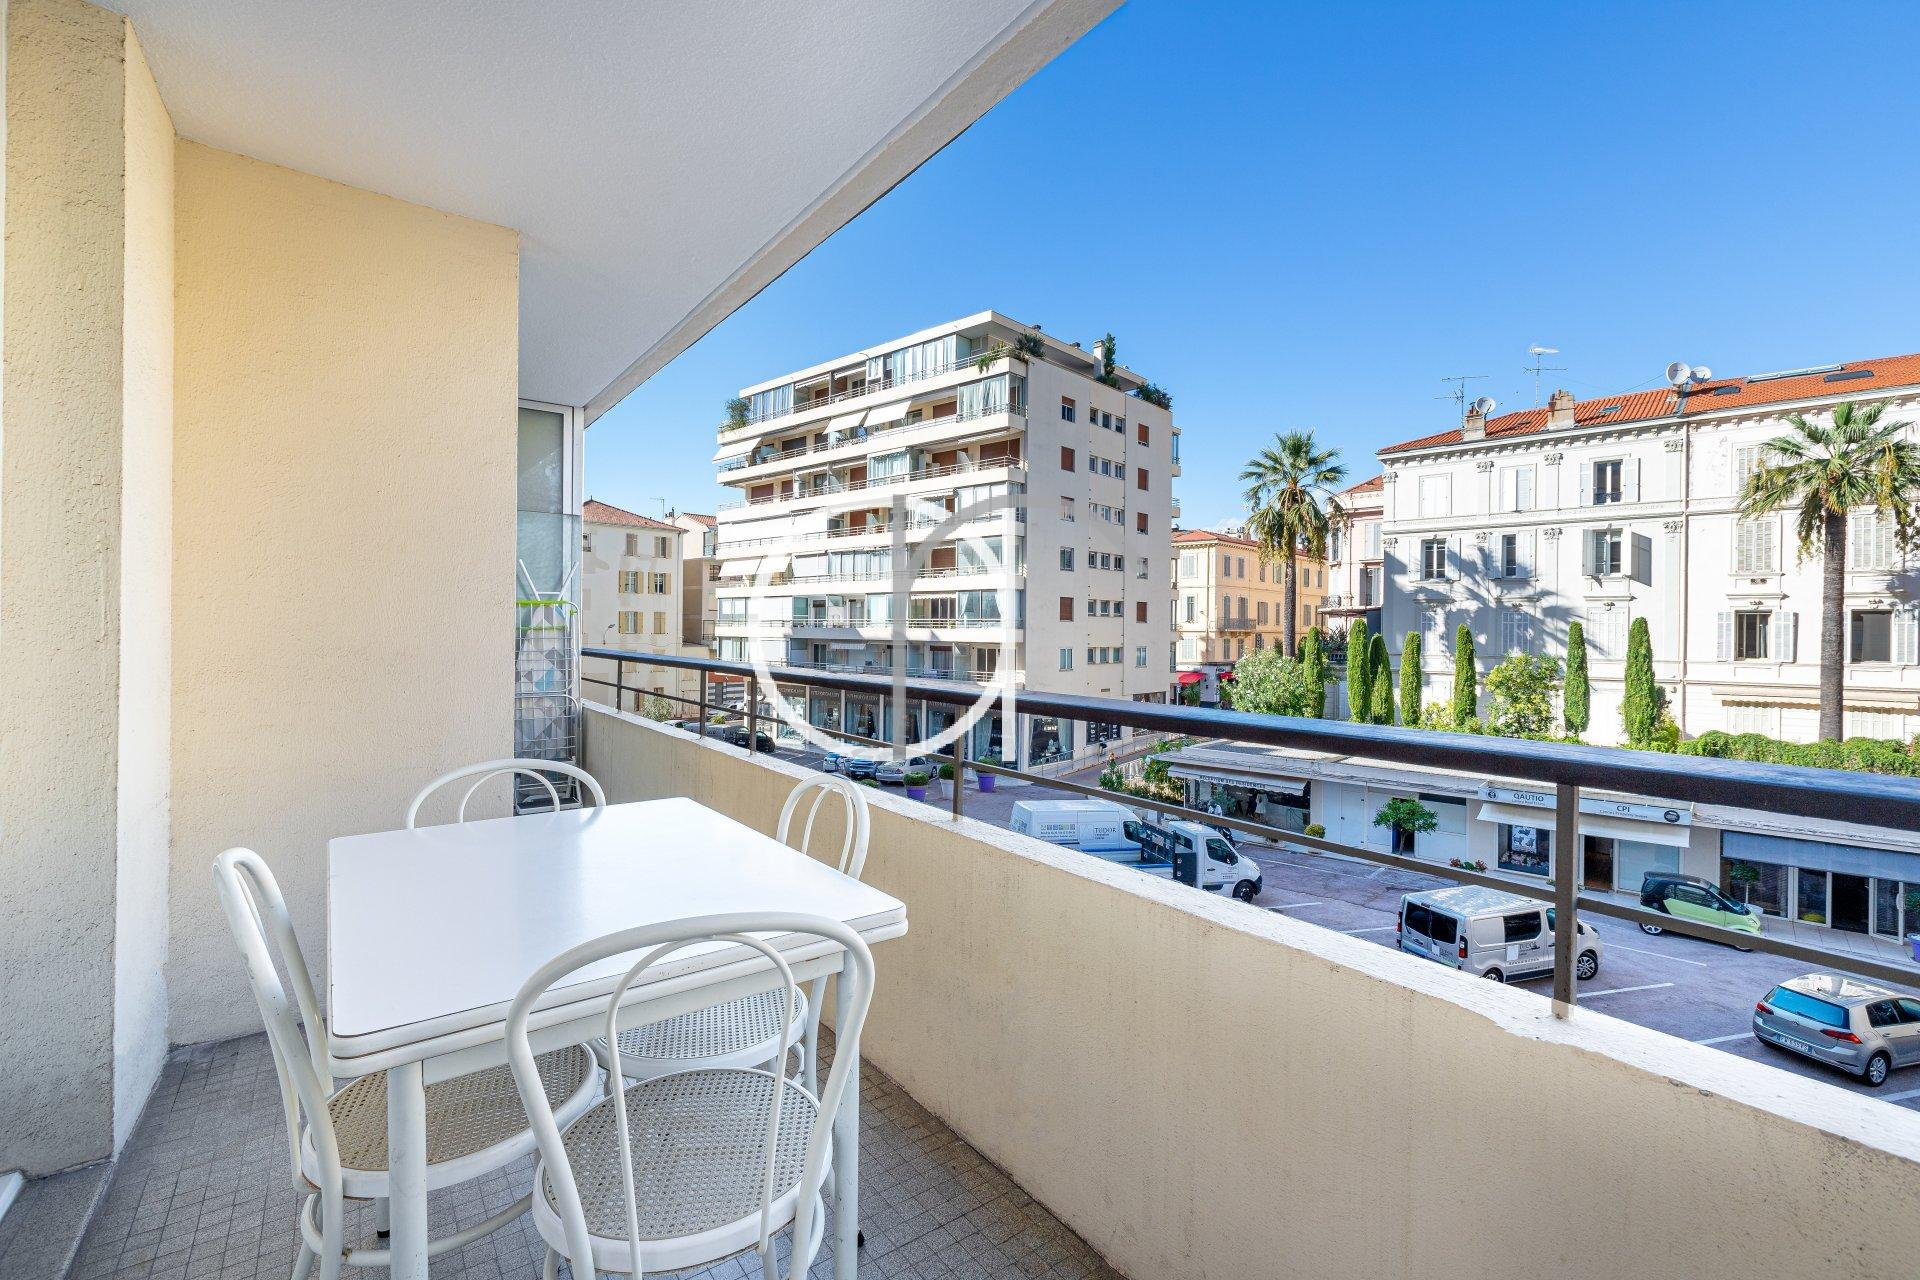 GRAND HOTEL - 1 BEDROOM WITH TERRACE